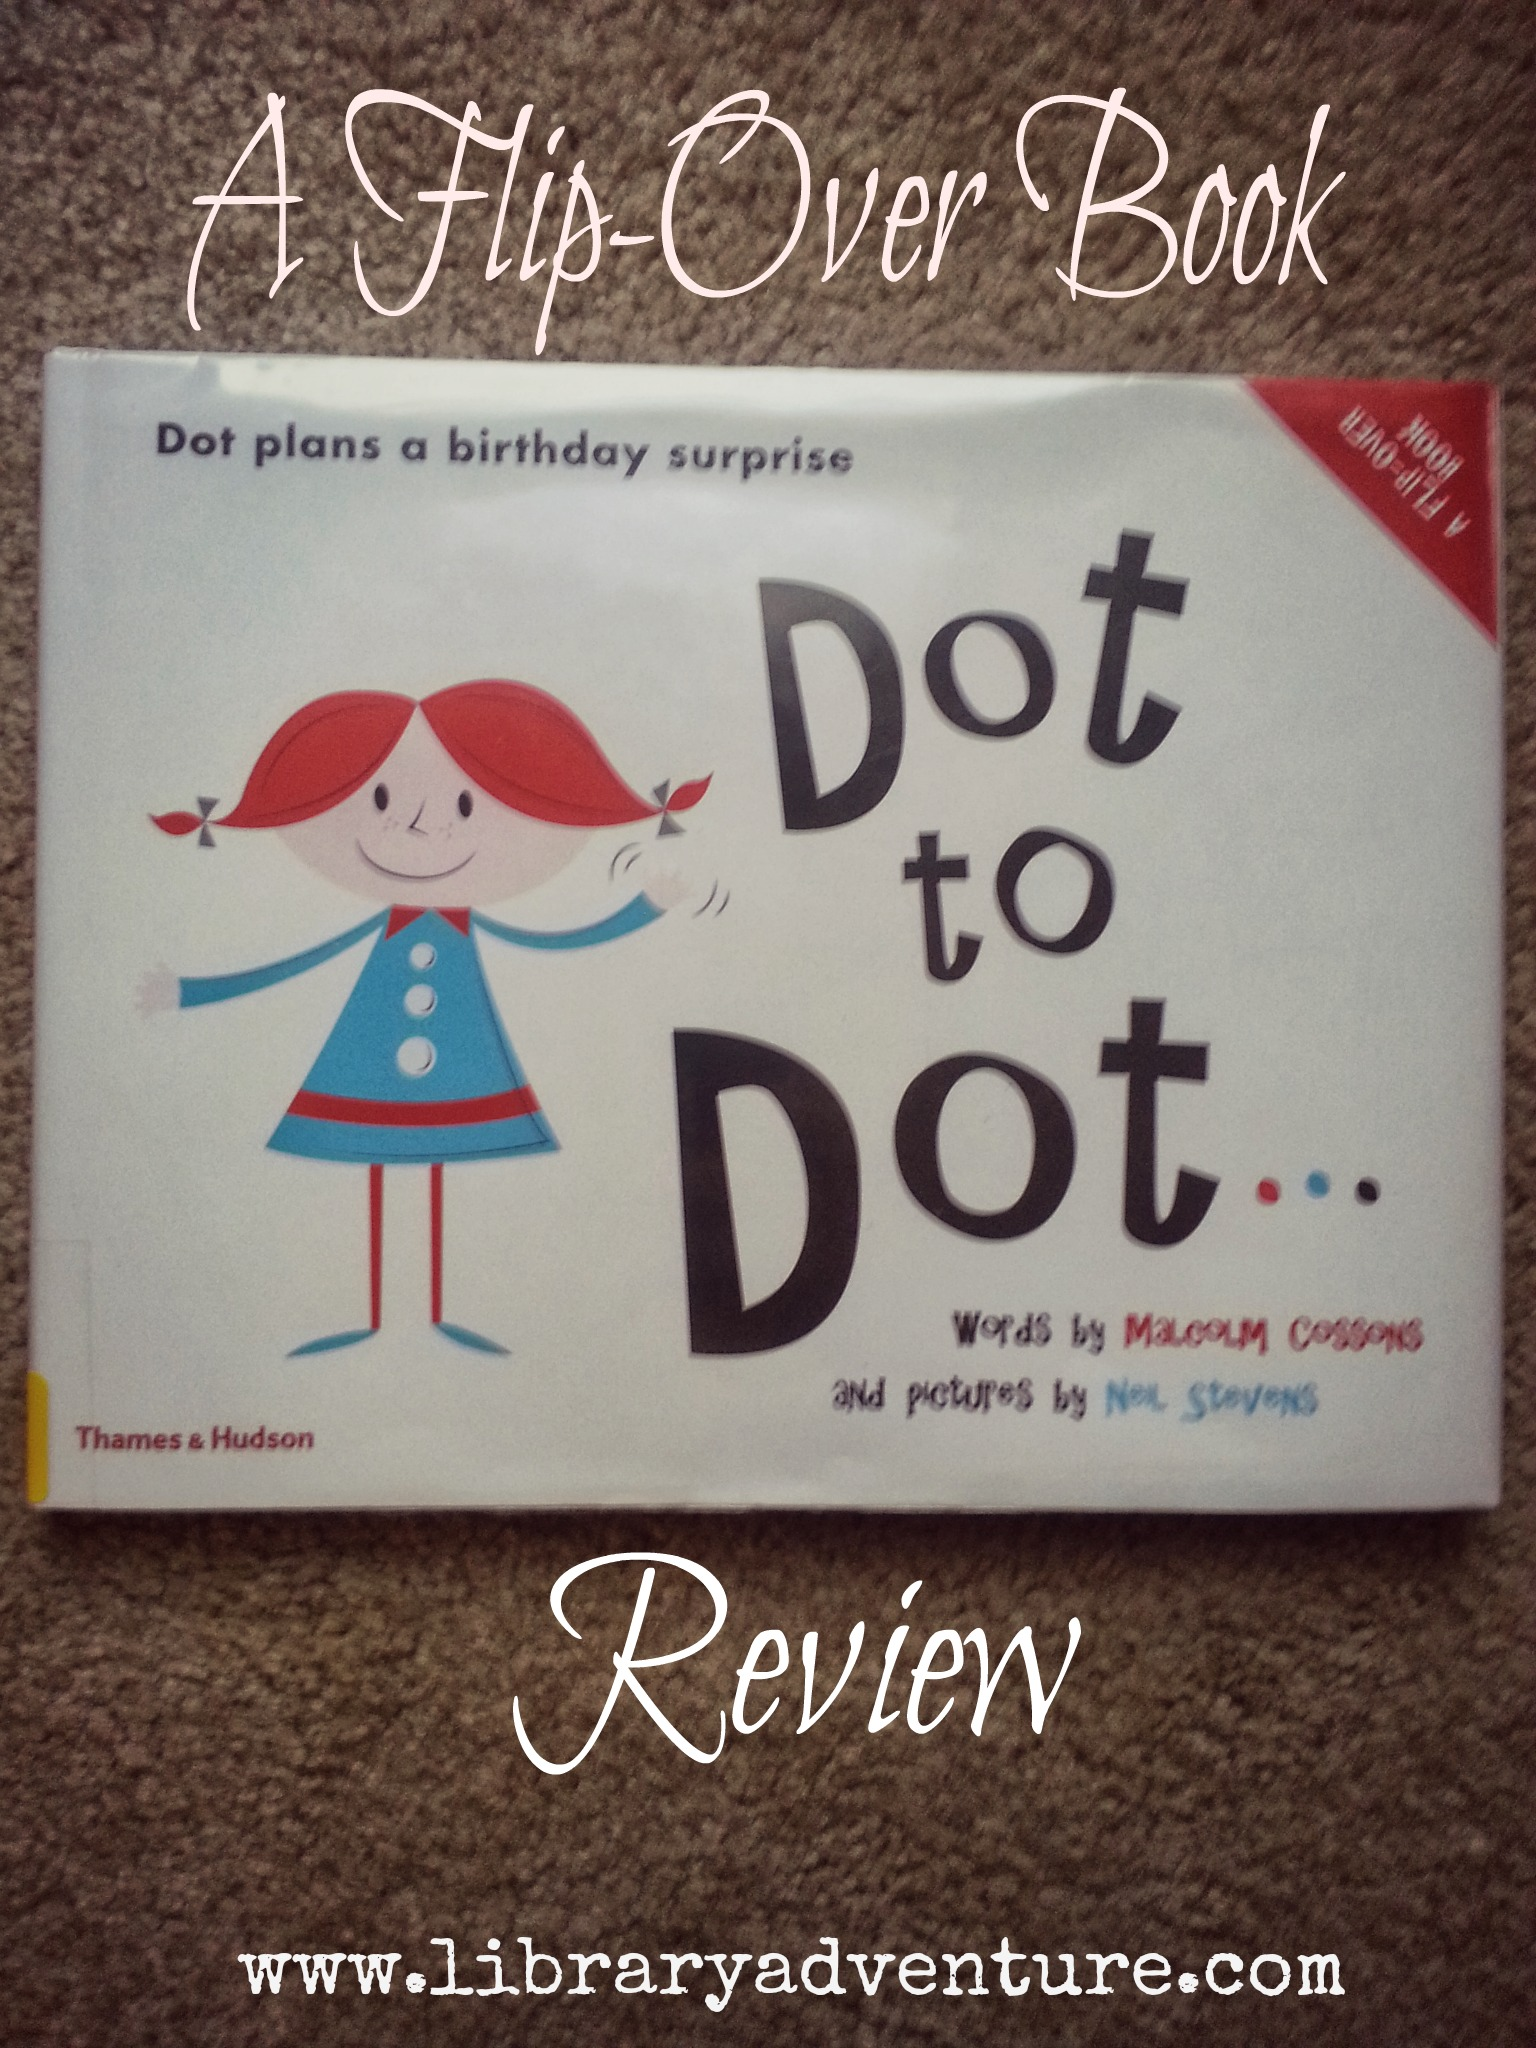 Dot to Dot (a Review) from Jenna at LibraryAdventure.com